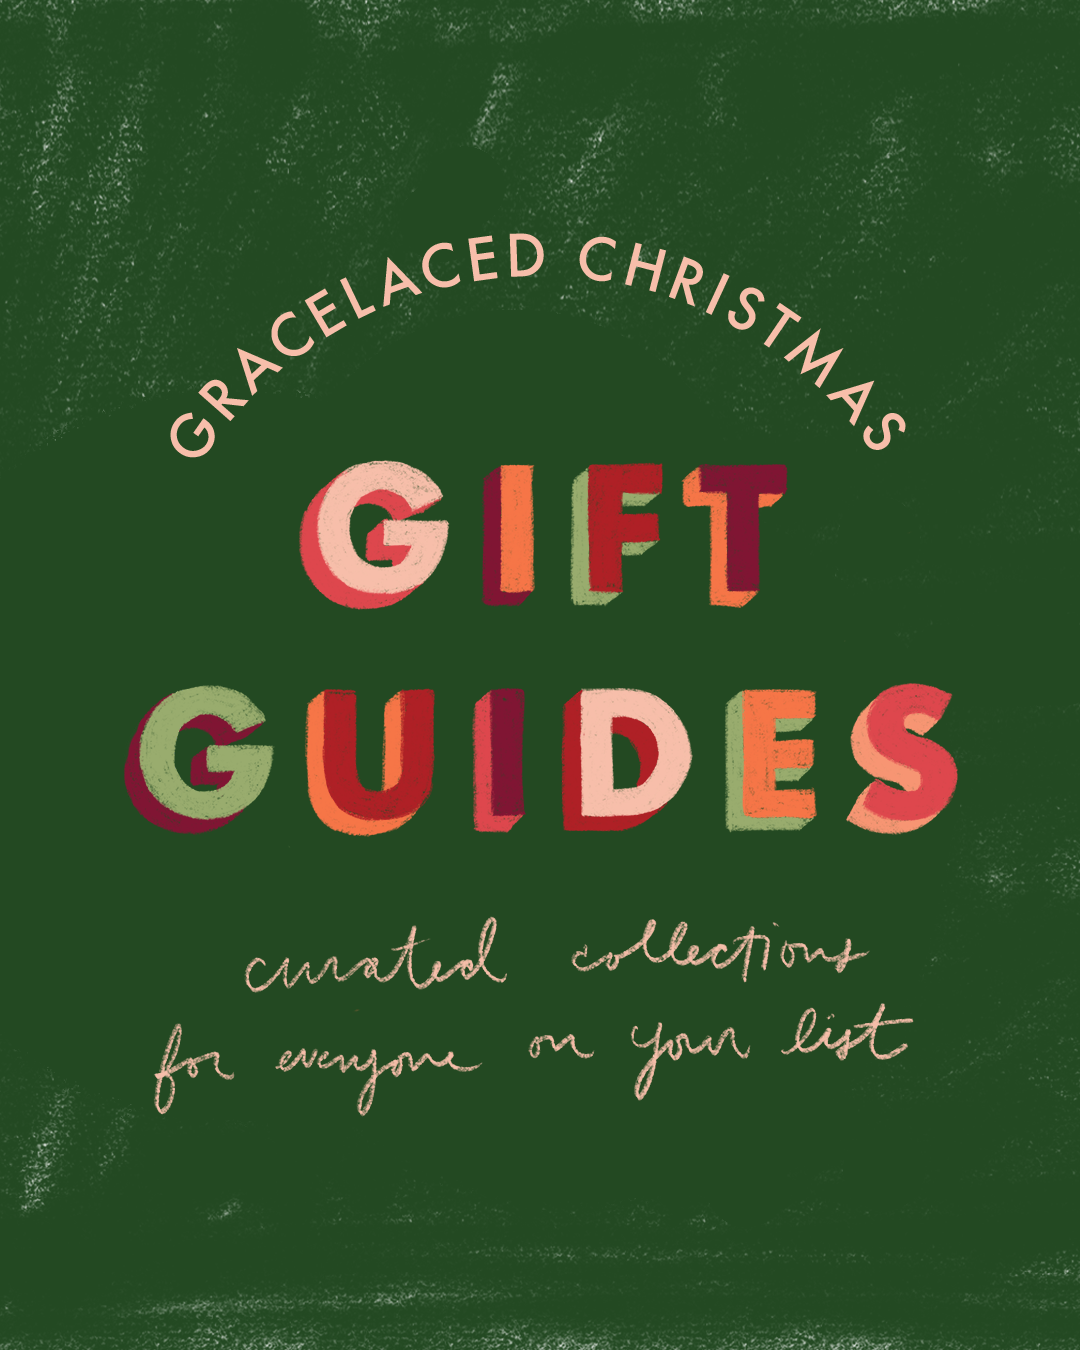 2020 GraceLaced Gift Guides